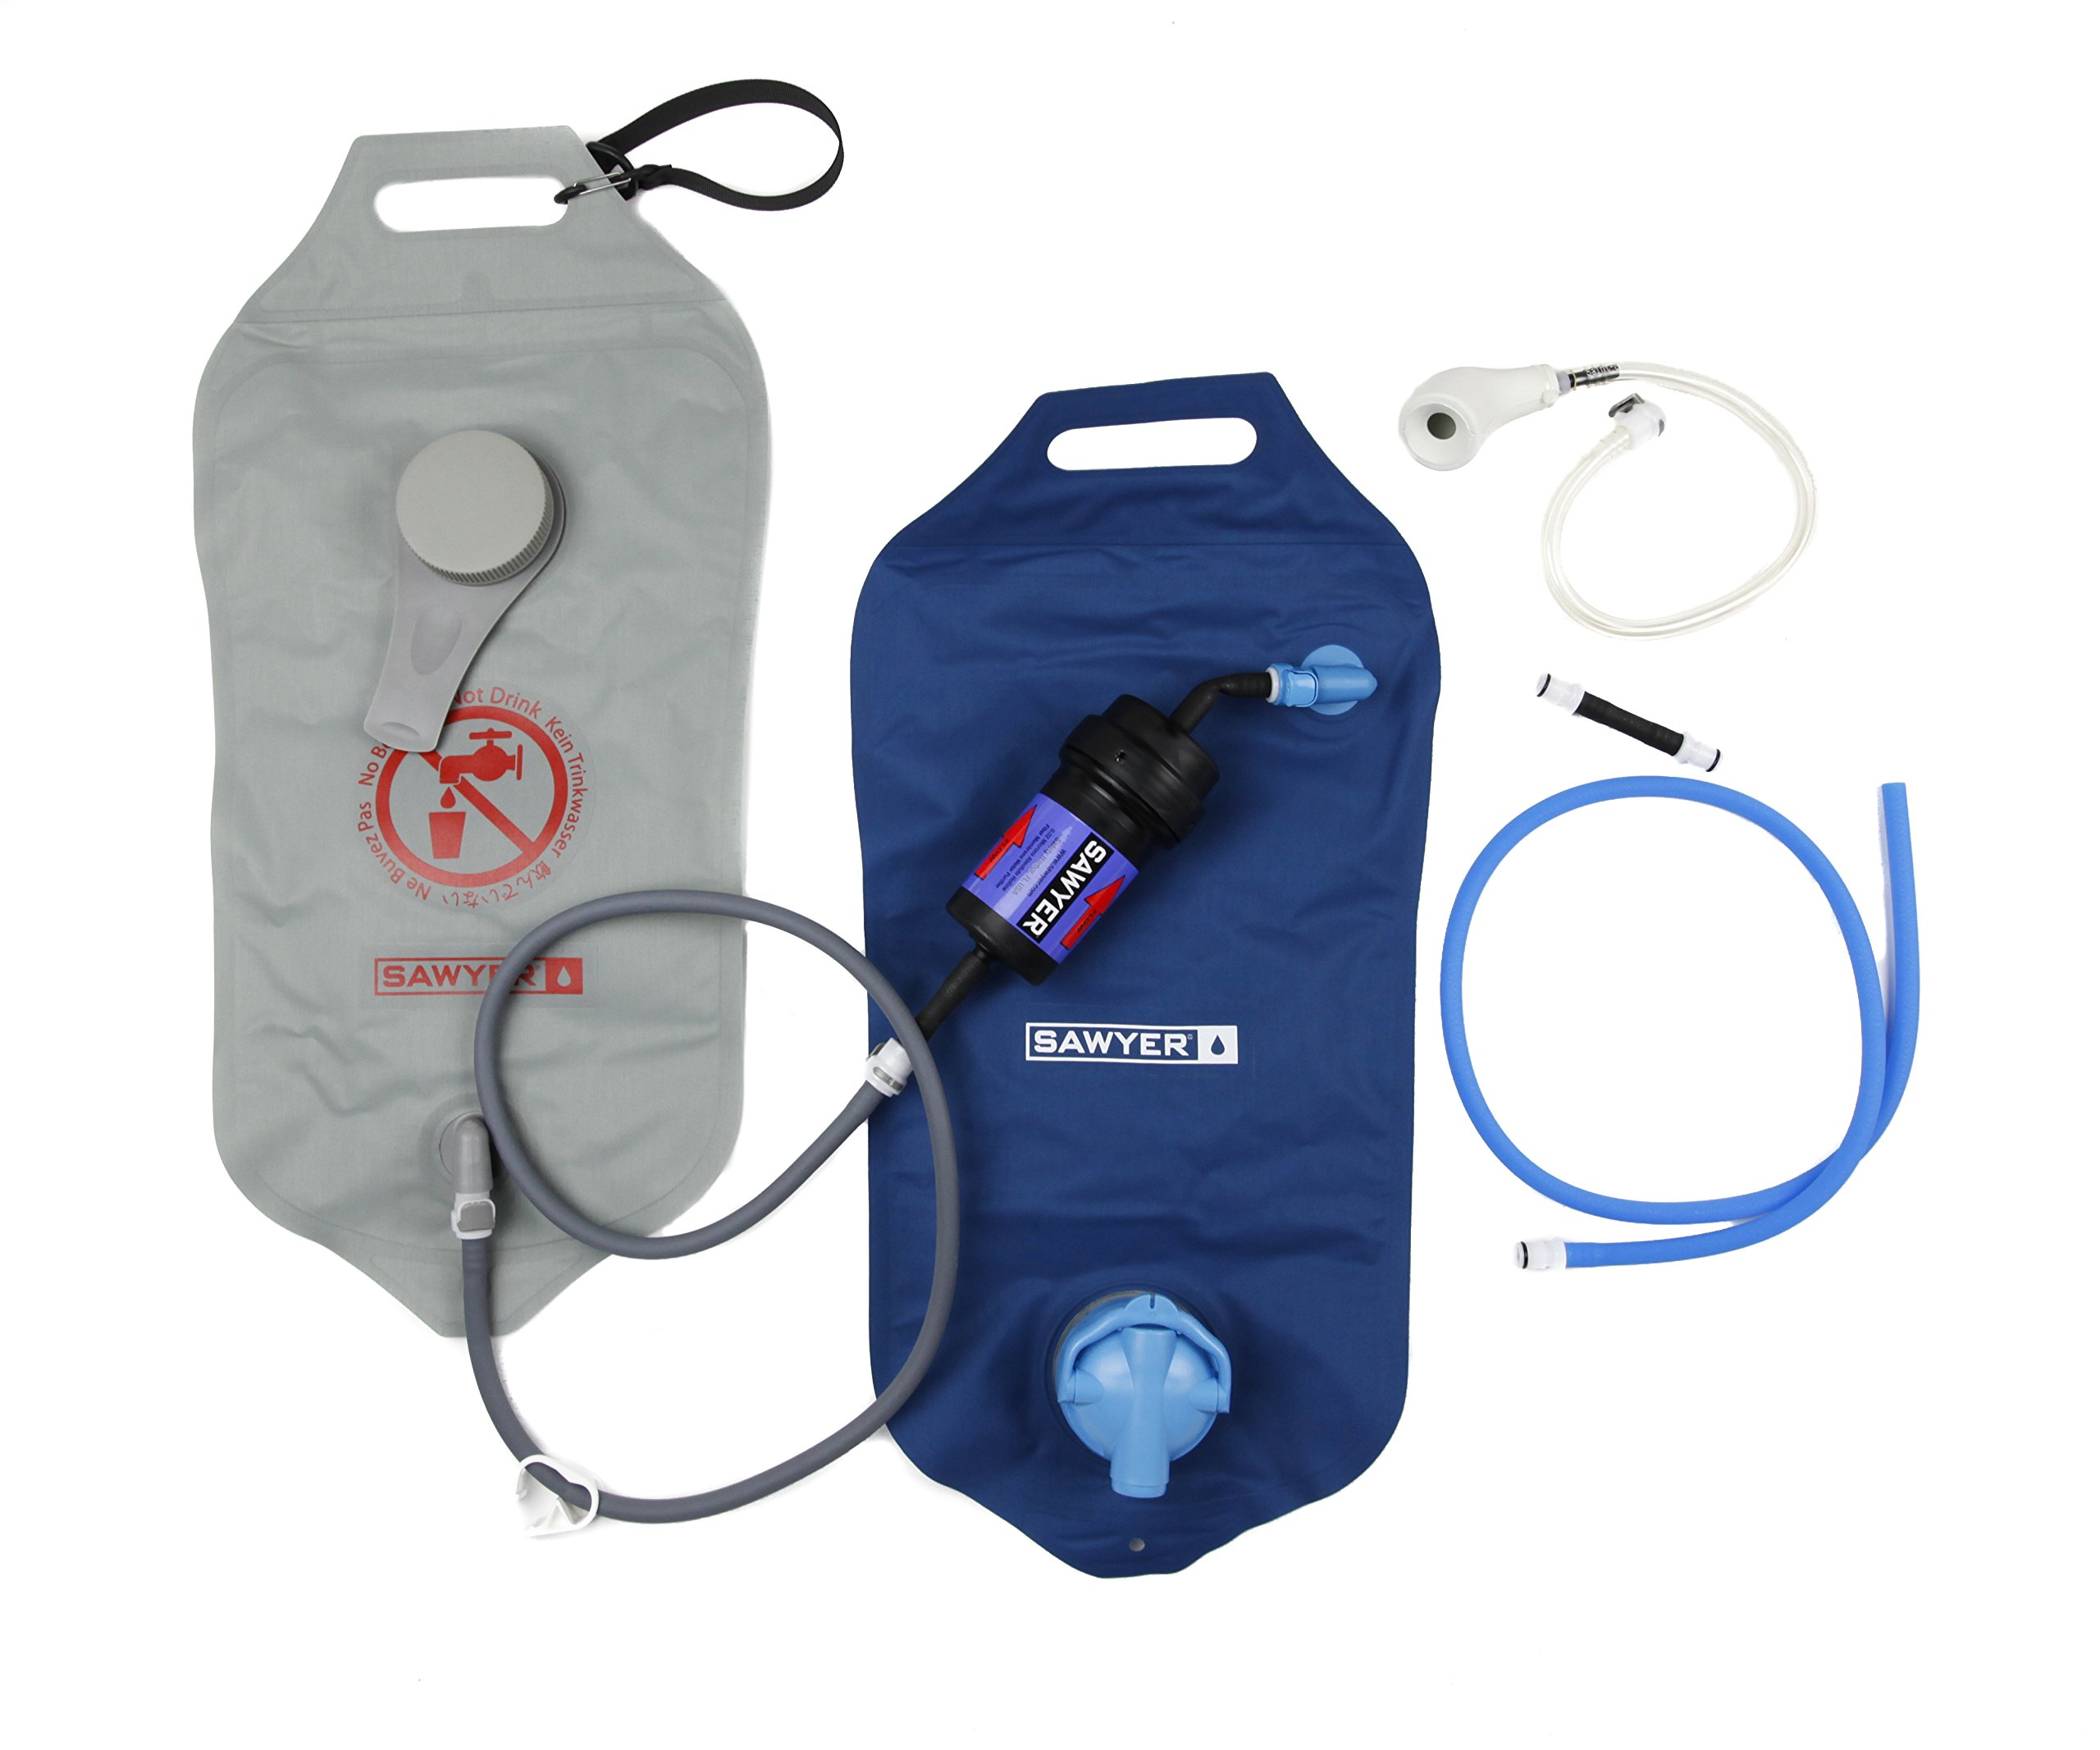 Sawyer Products SP194 Complete Dual Bag 0.02 Micron Water Purifier System, 4 Liters Each: Amazon.es: Deportes y aire libre